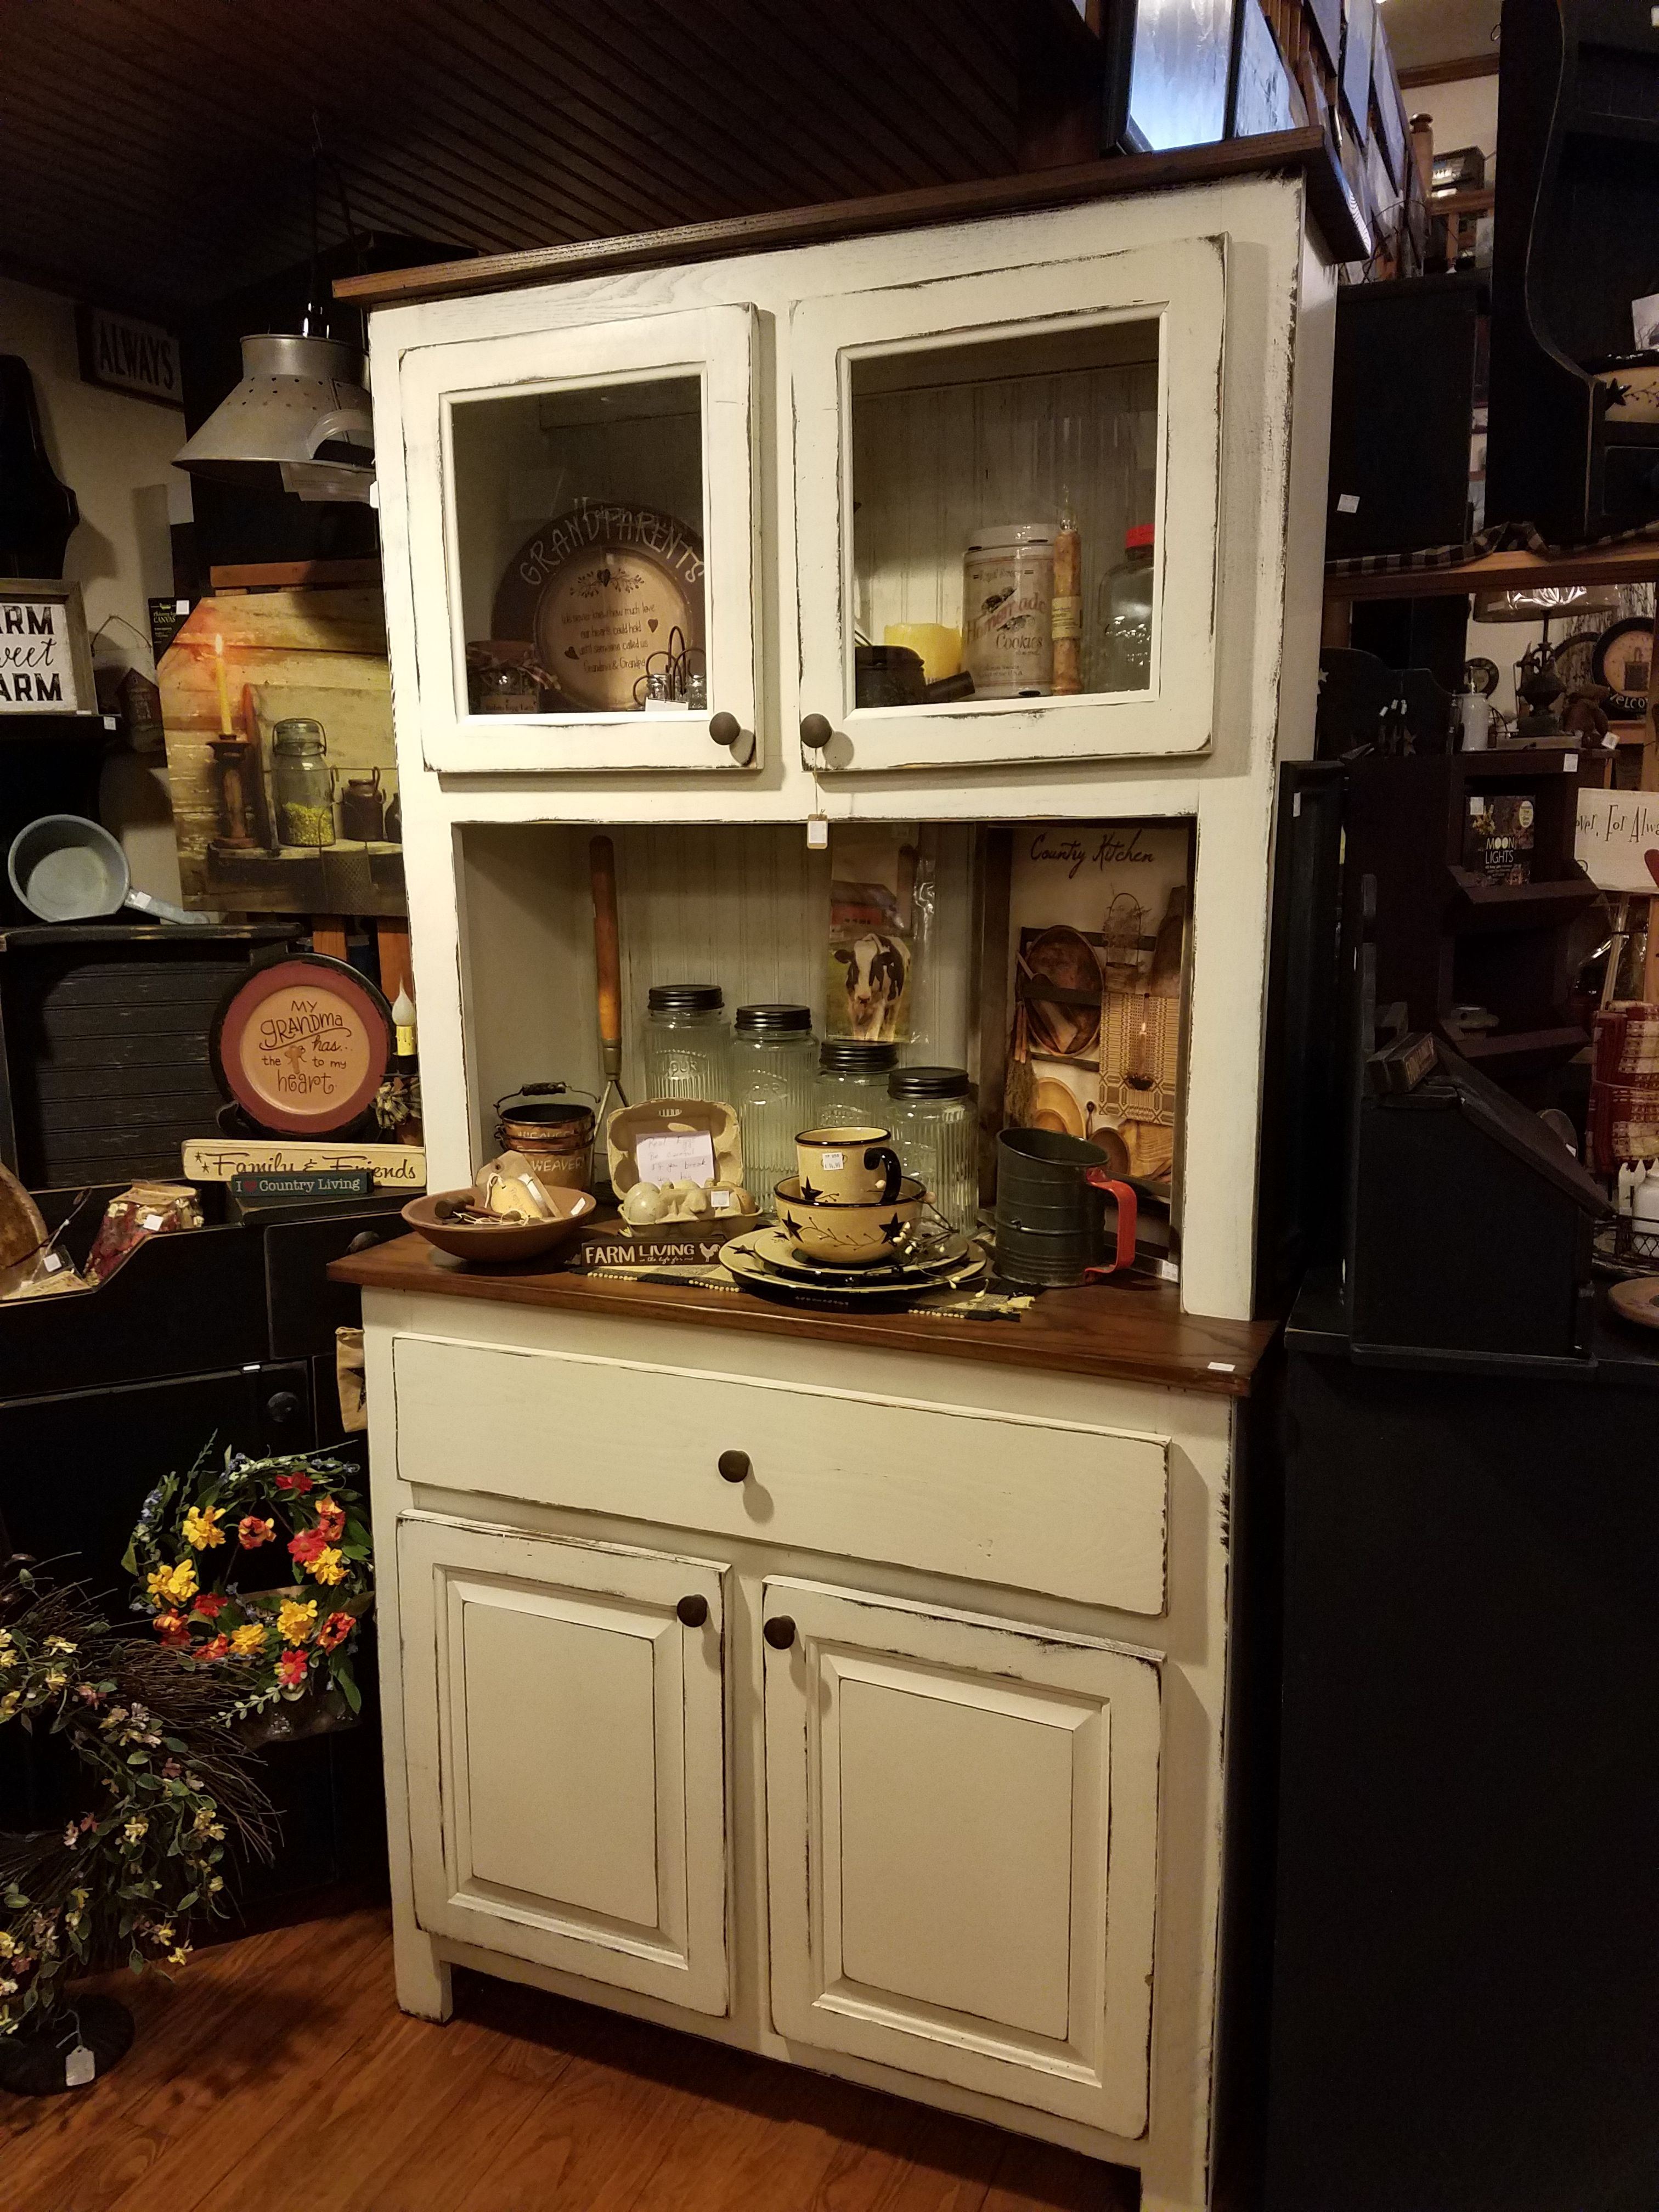 Farmhouse Cabinet Ms Becky S Carries Several Different Cabinets Check Them Out On Her Facebook Page Antique Kitchen Decor Kitchen Decor Farmhouse Cabinets